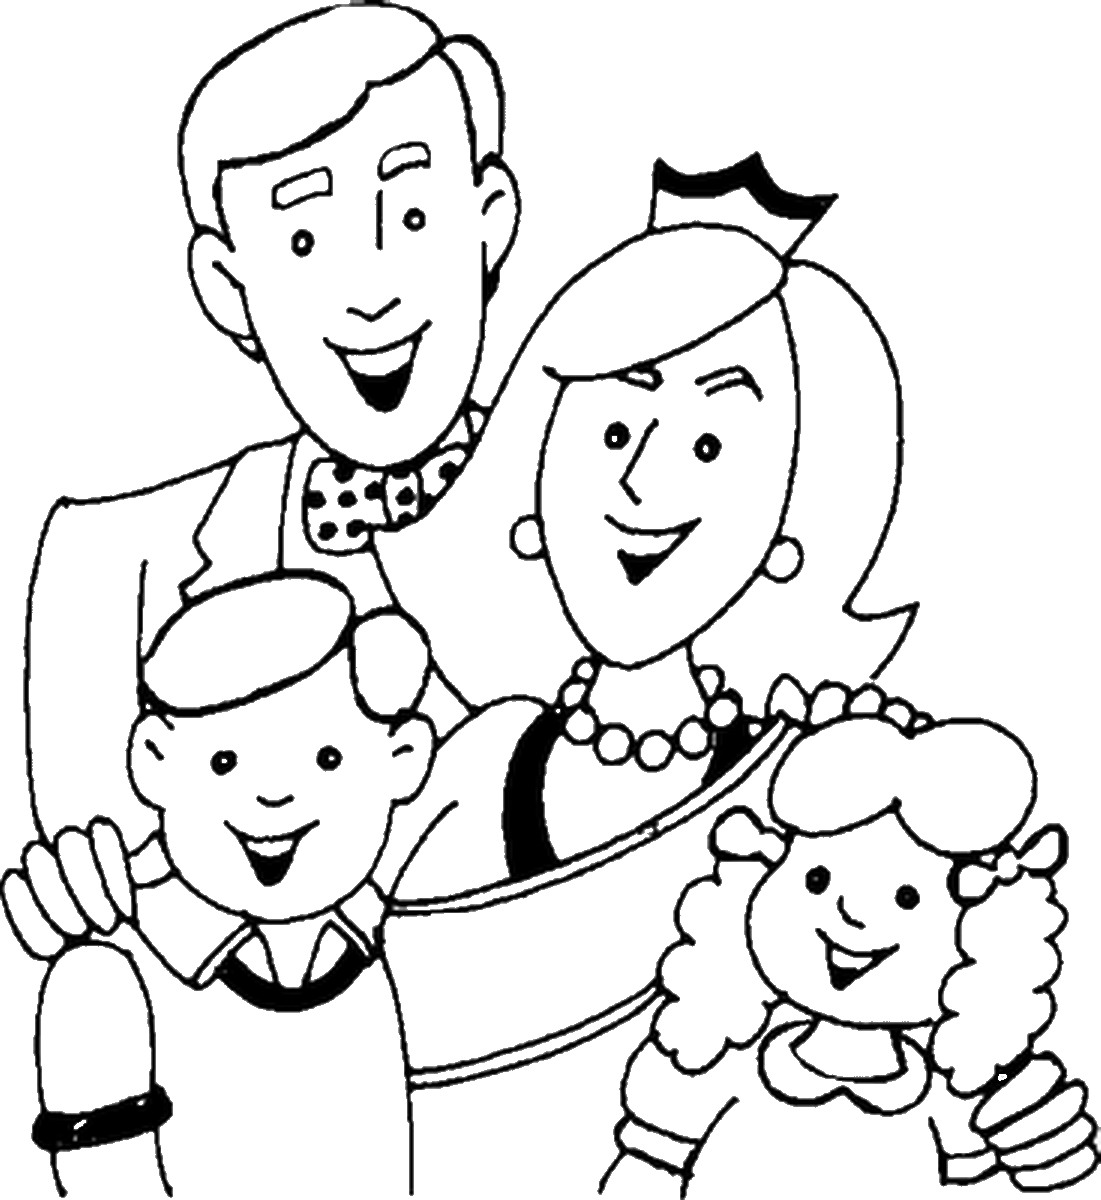 coloring family picture family coloring pages coloring pages to download and print picture coloring family